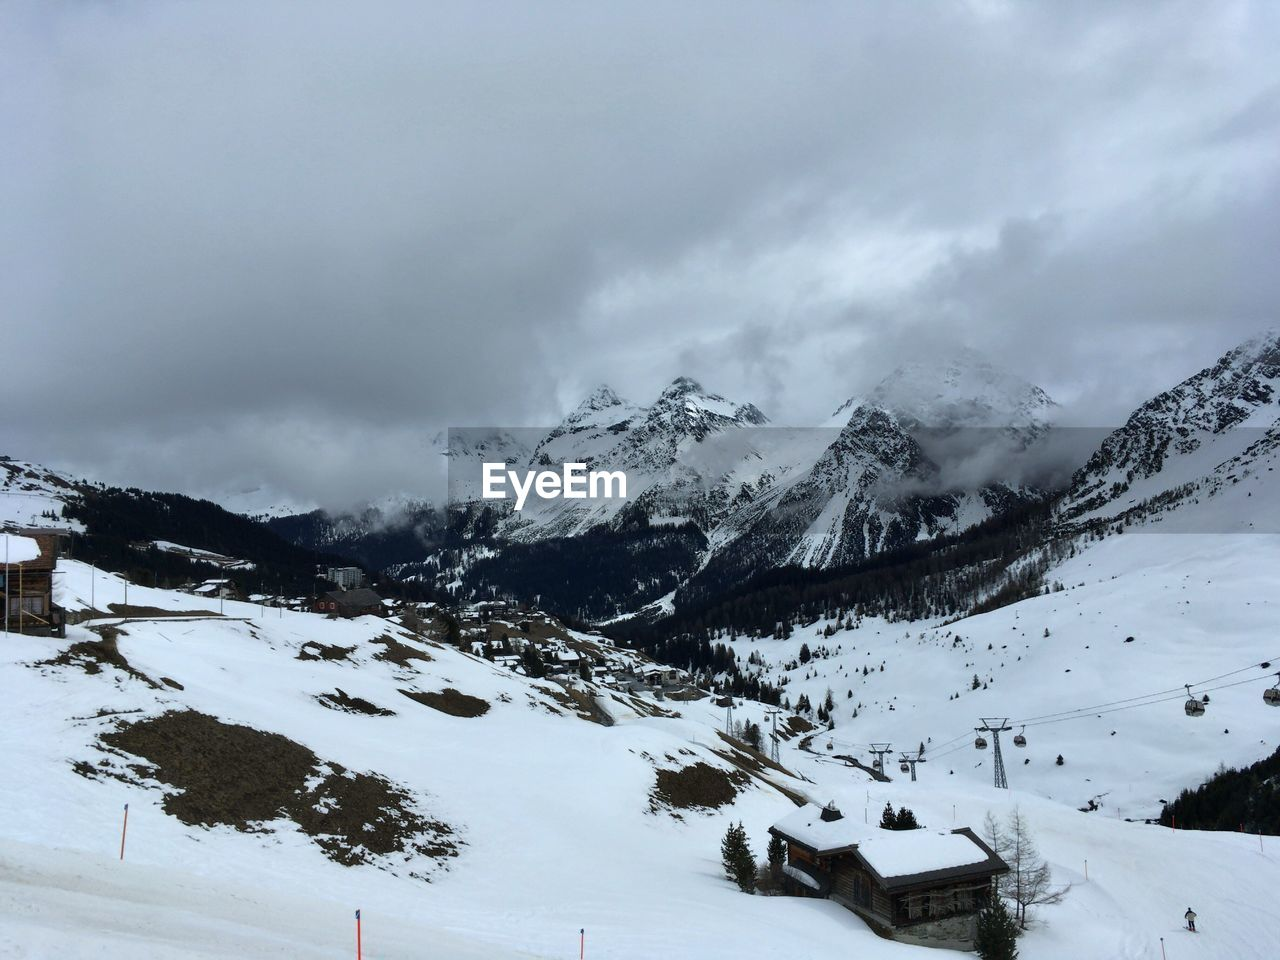 snow, winter, cold temperature, weather, mountain, scenics, nature, landscape, beauty in nature, tranquil scene, tranquility, snowcapped mountain, outdoors, sky, cloud - sky, skiing, mountain range, day, no people, wilderness area, ski lift, range